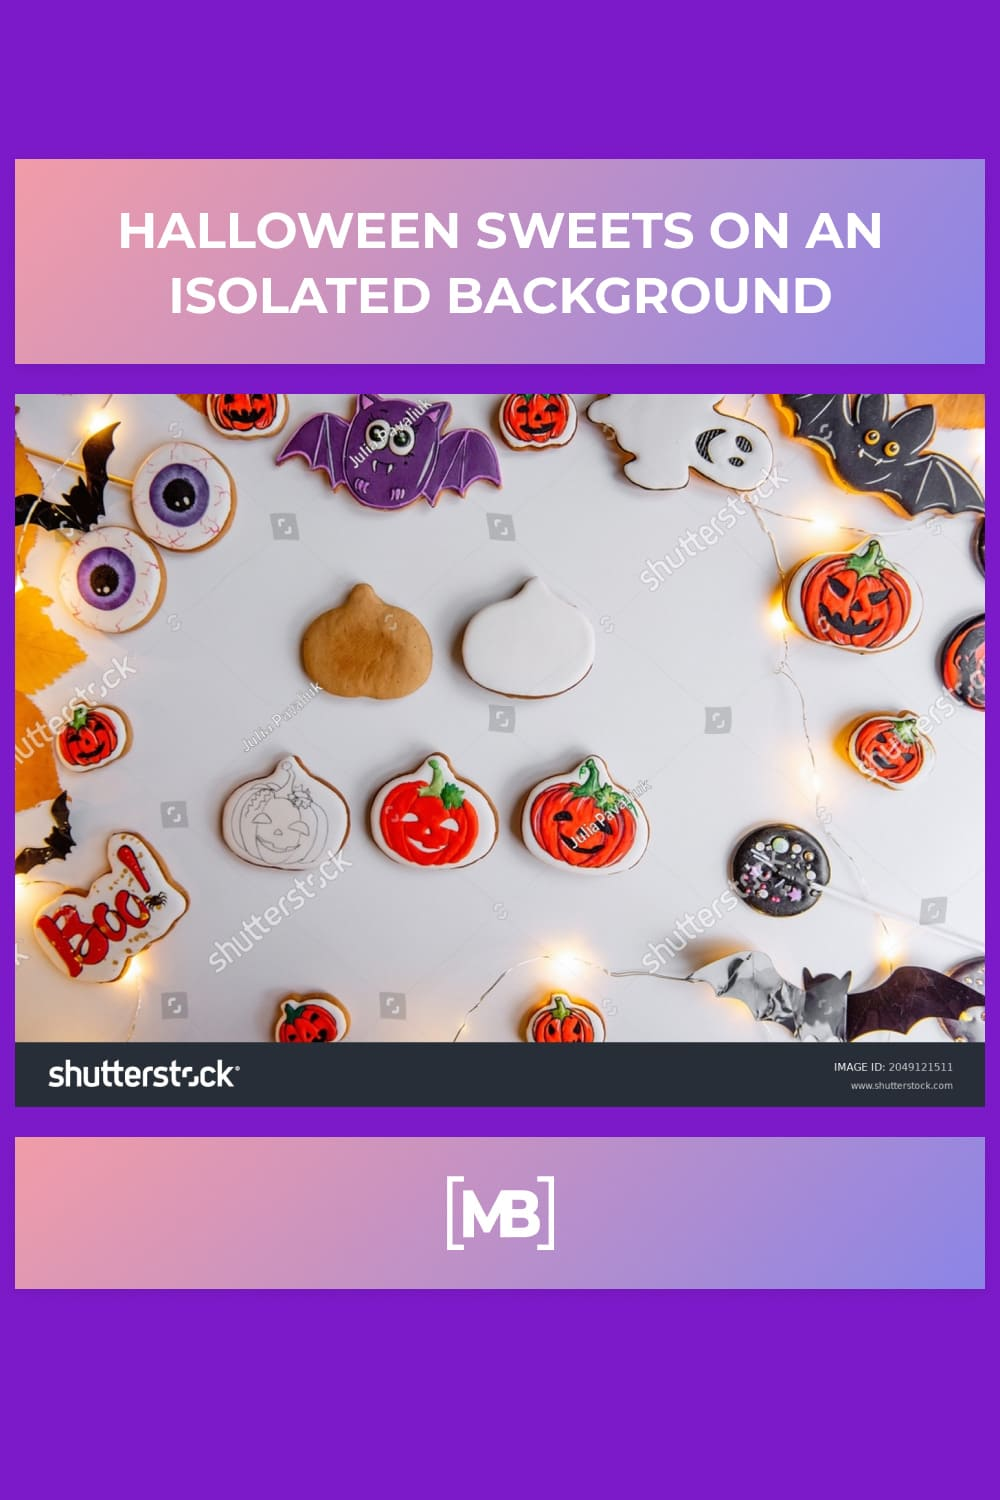 17 Halloween sweets on an isolated background